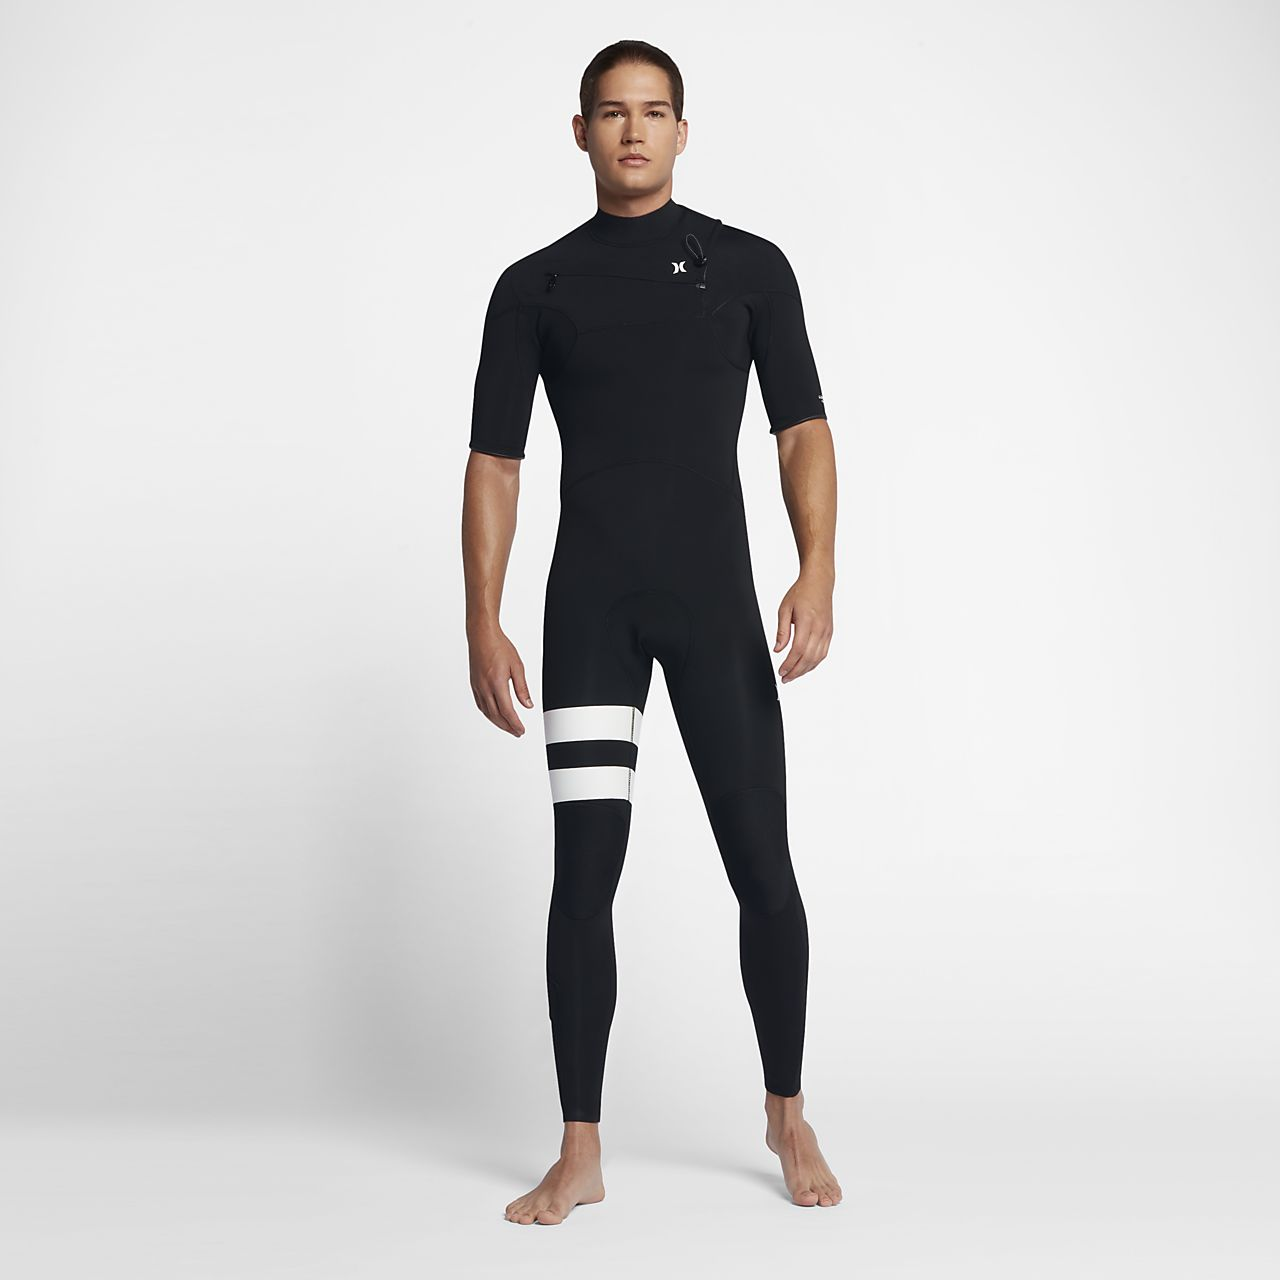 Hurley Advantage Plus 2/2mm Fullsuit Men's Short-Sleeve Wetsuit